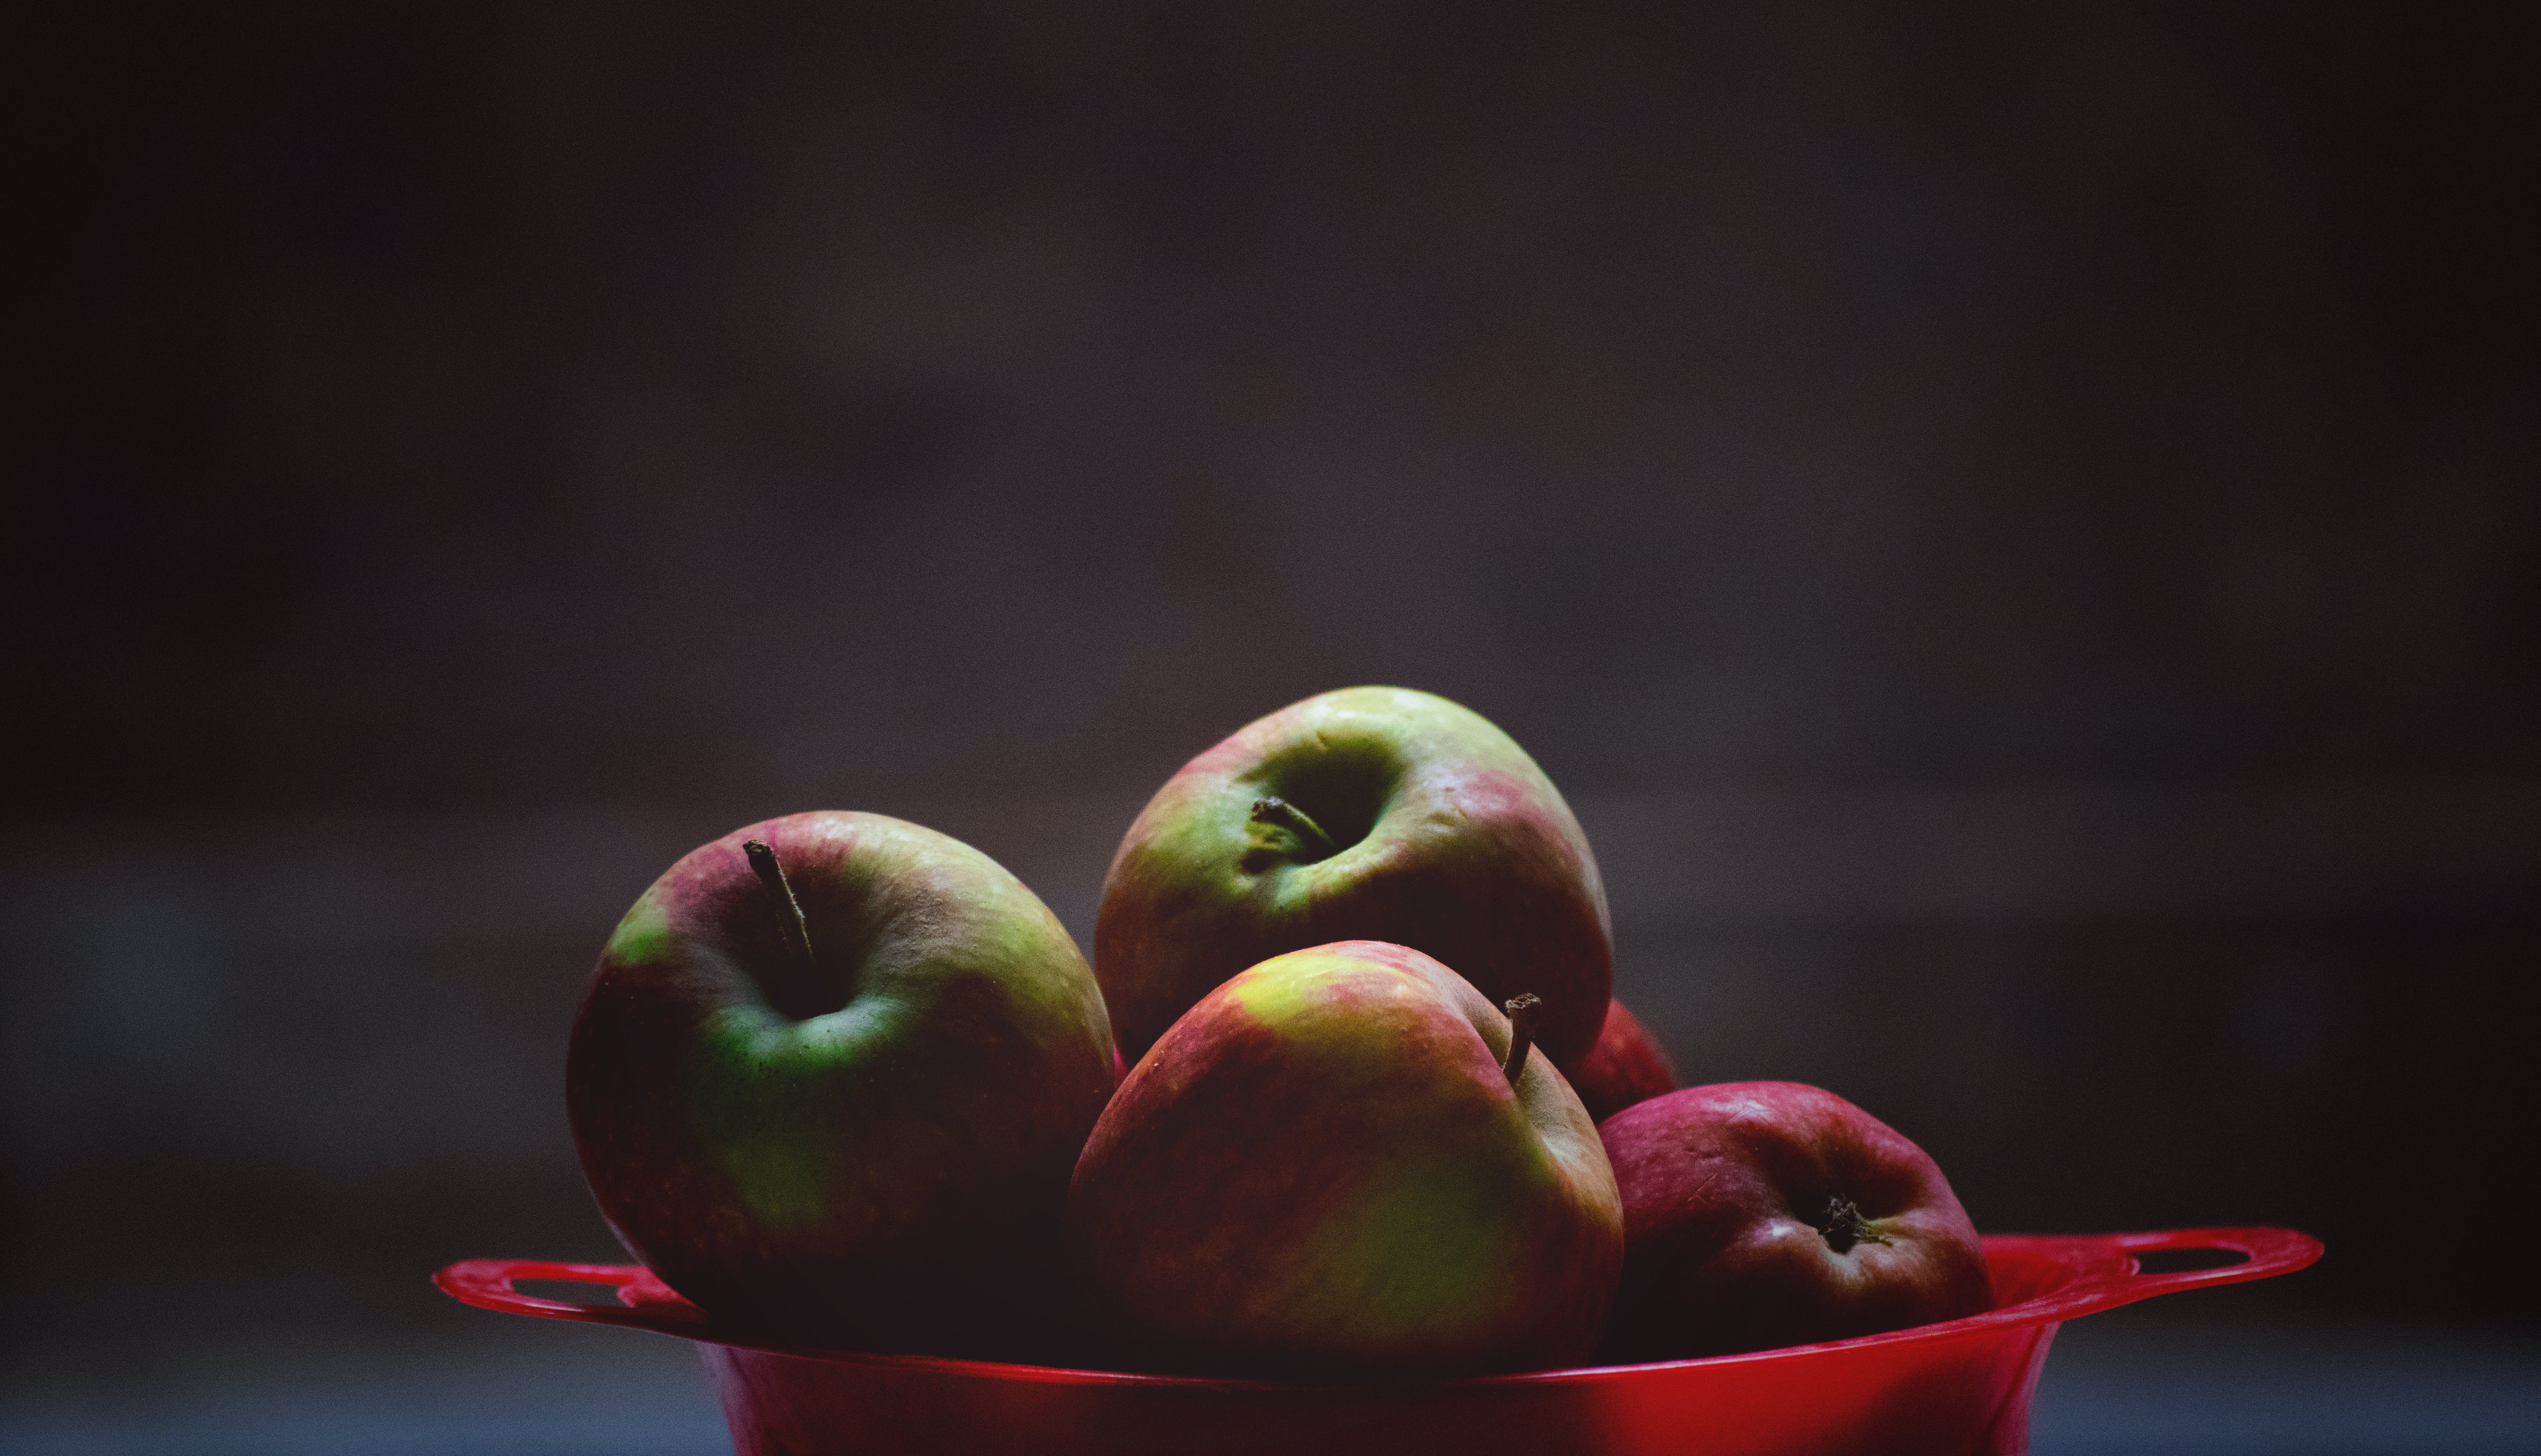 Green and Red Apple Fruits in Red Plastic Bowl